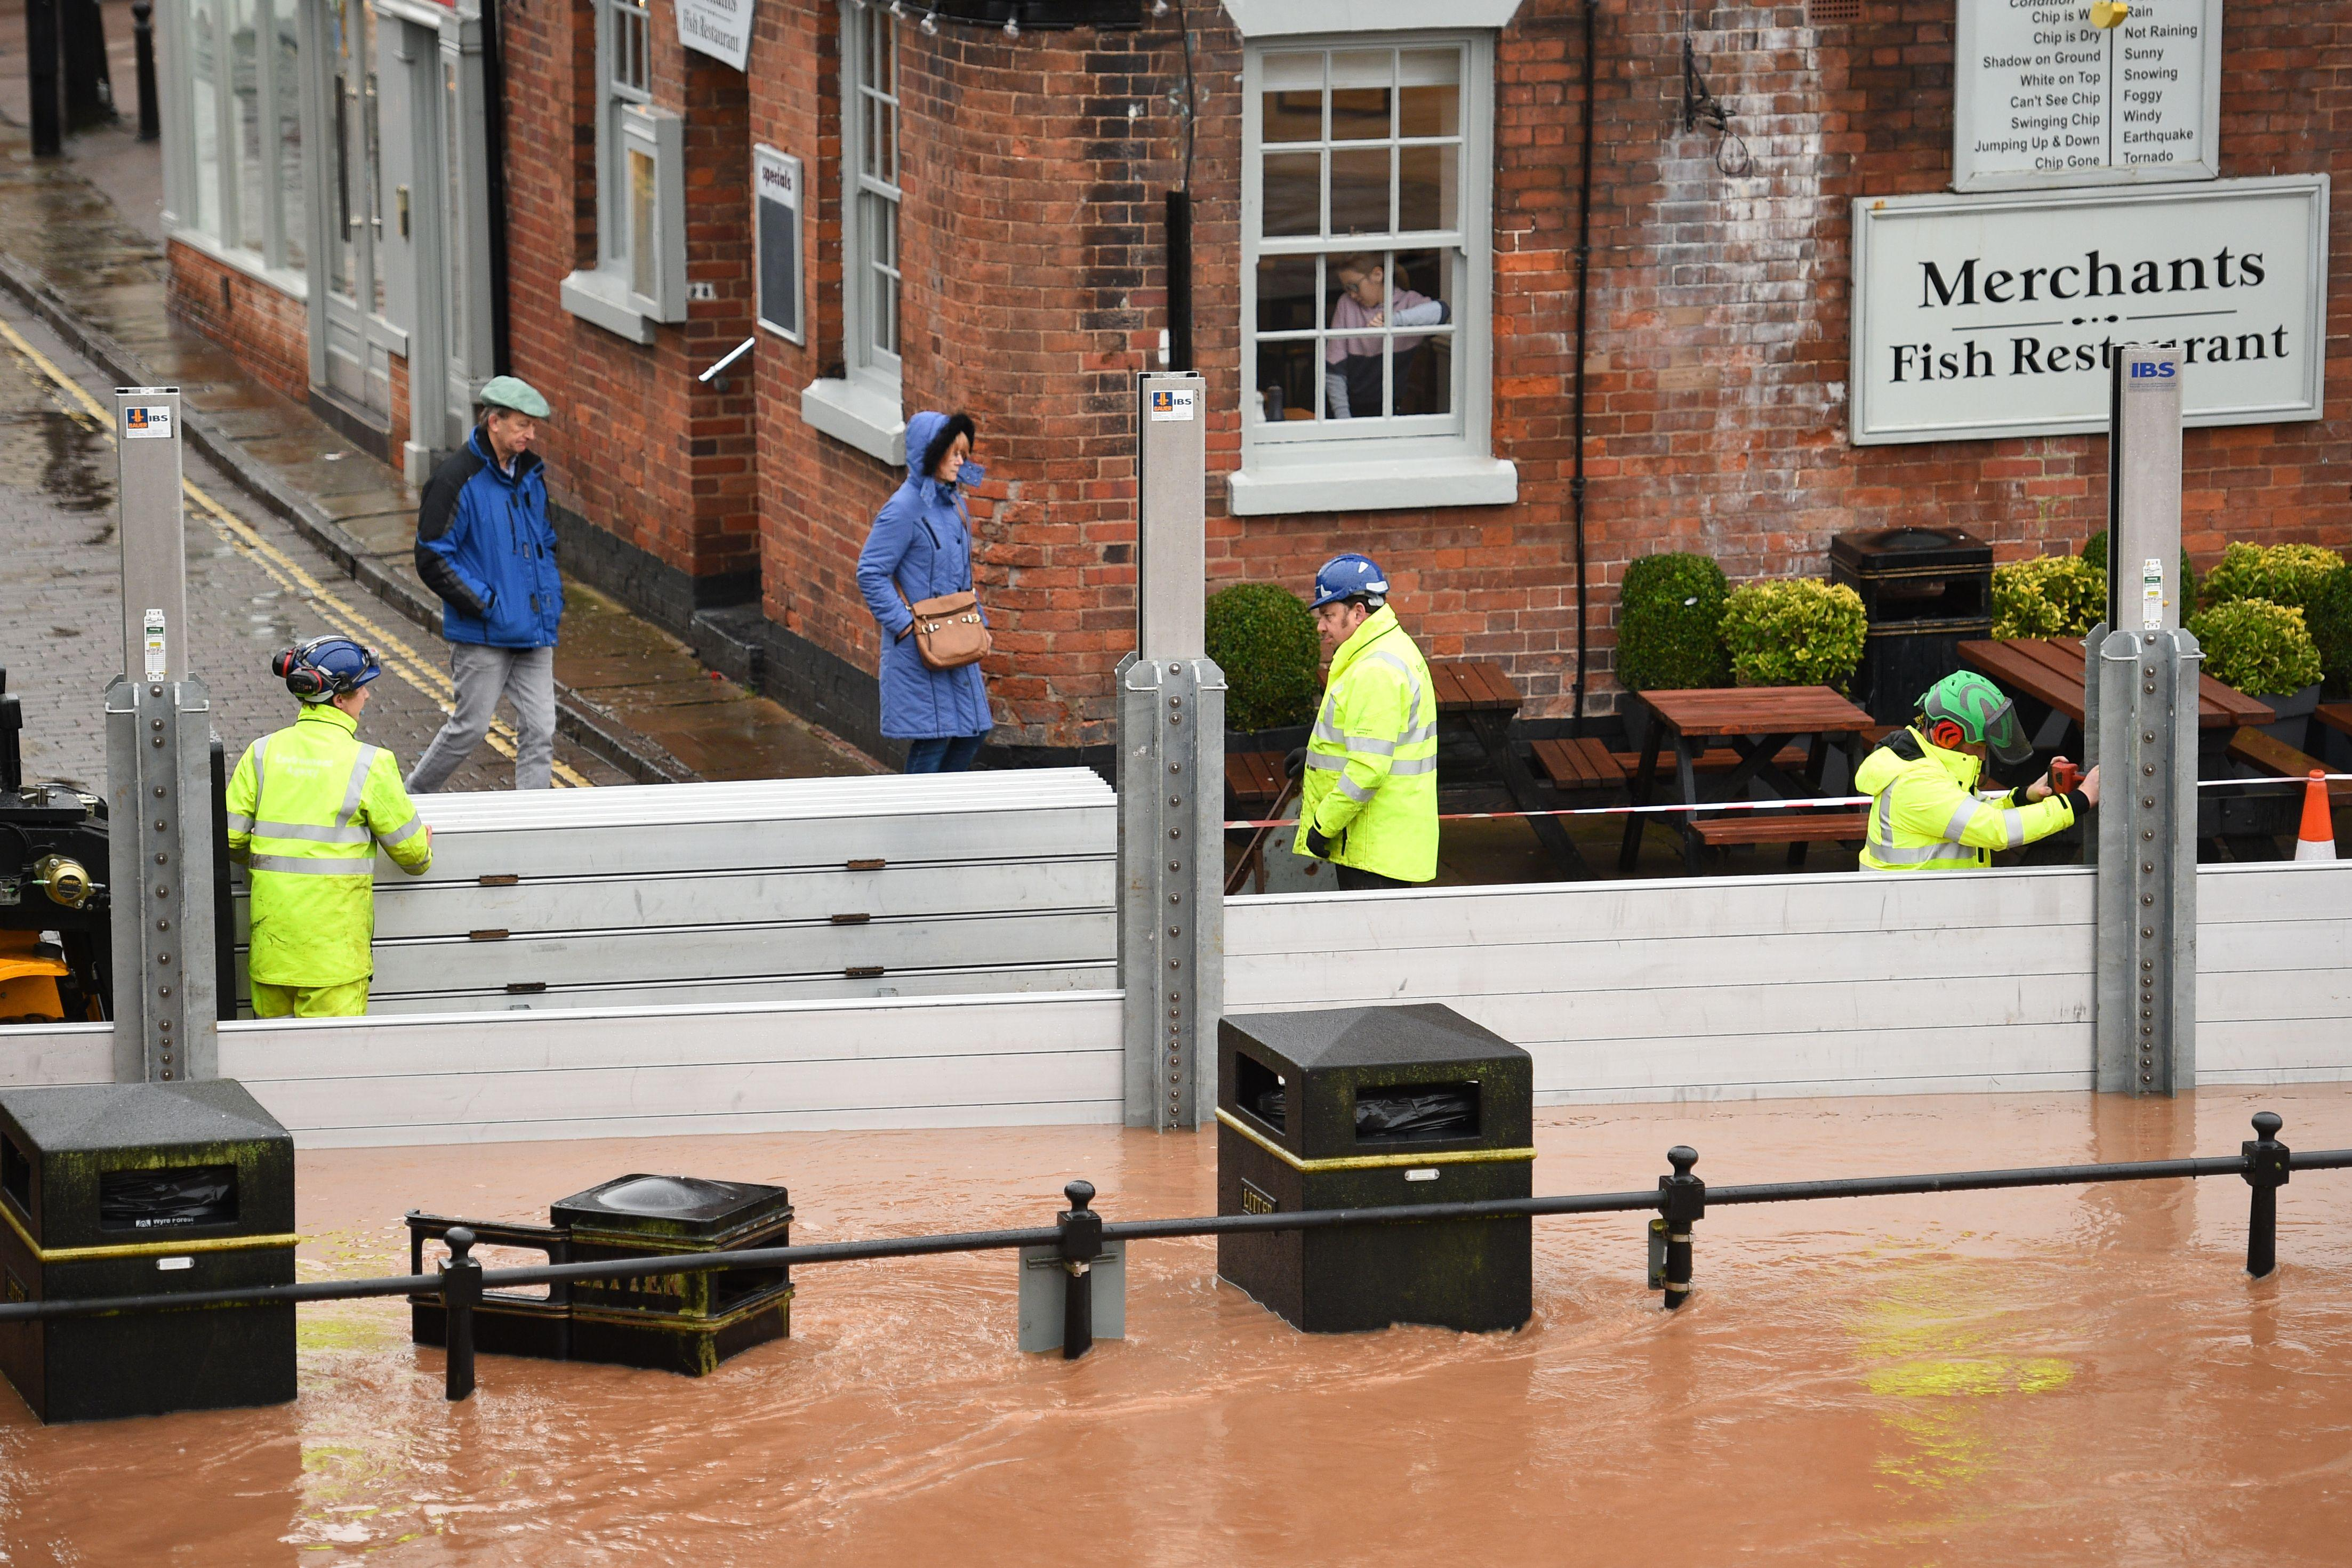 """Environment agency workers put up flood defences in floodwater after the River Severn bursts it's banks in Bewdley, west of Birmingham on February 16, 2020, after Storm Dennis caused flooding across large swathes of Britain. - As Storm Dennis sweeps in, the country is bracing itself for widespread weather disruption for the second weekend in a row. Experts have warned that conditions amount to a """"perfect storm"""", with hundreds of homes at risk of flooding. (Photo by Oli SCARFF / AFP) (Photo by OLI SCARFF/AFP via Getty Images)"""